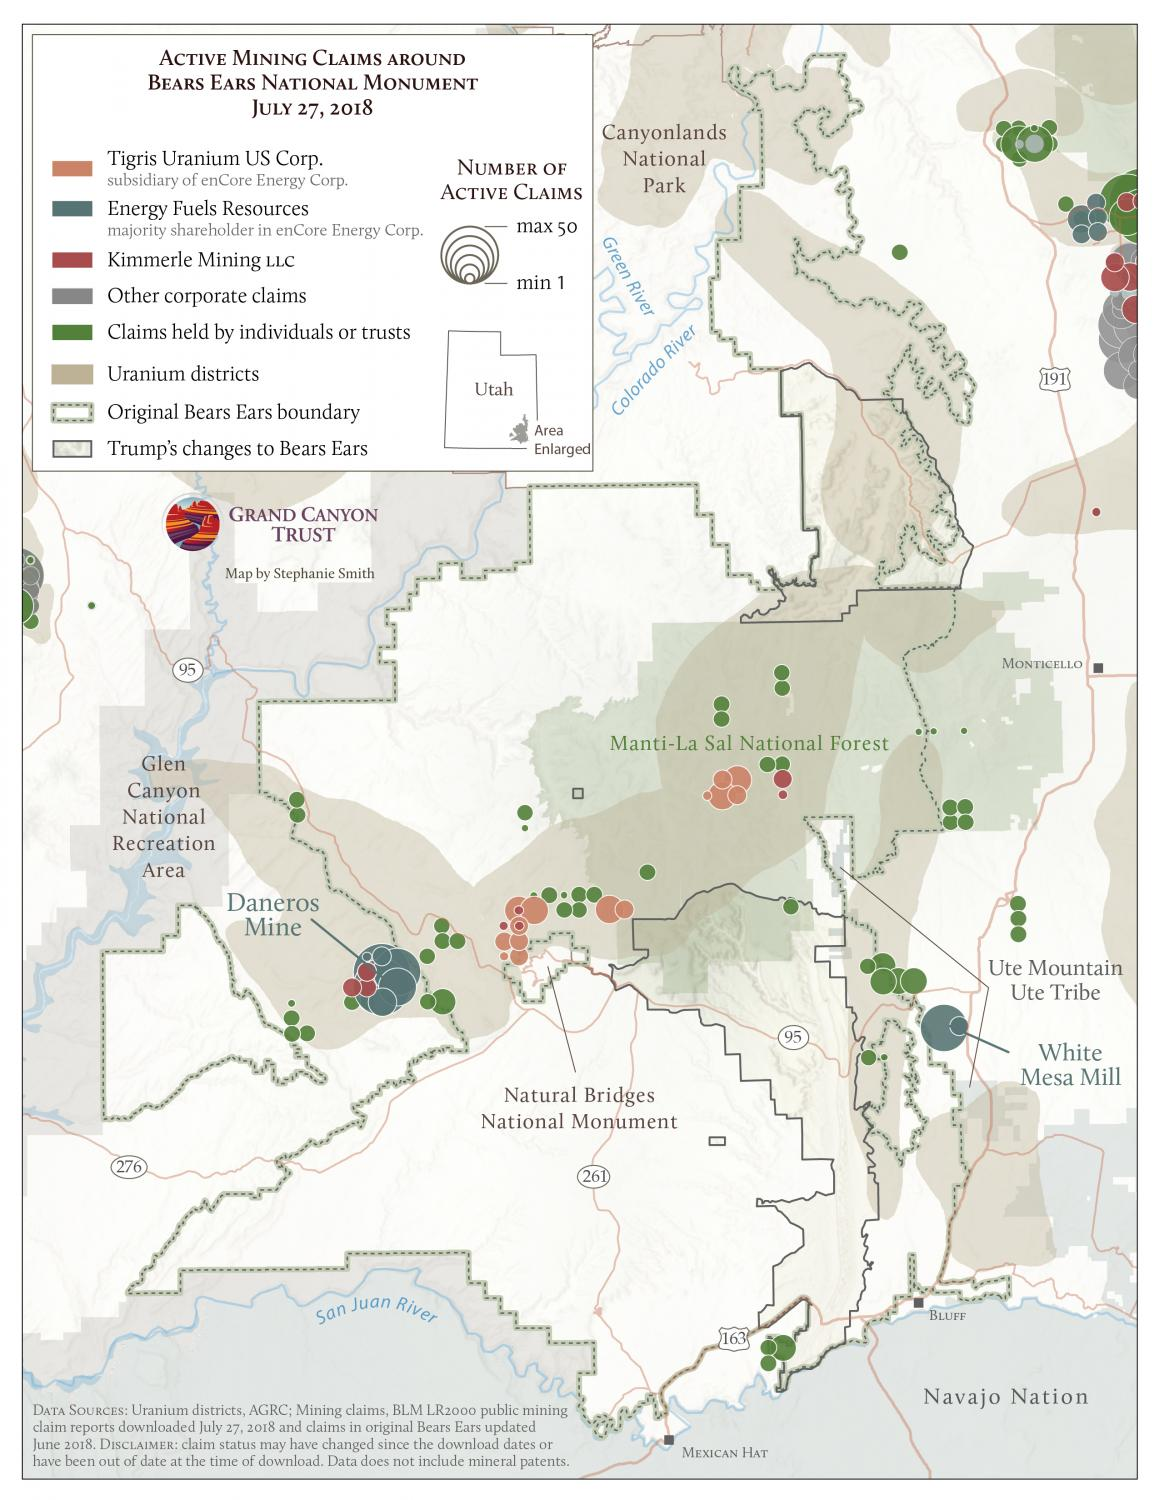 Map of active mining claims in Bears Ears